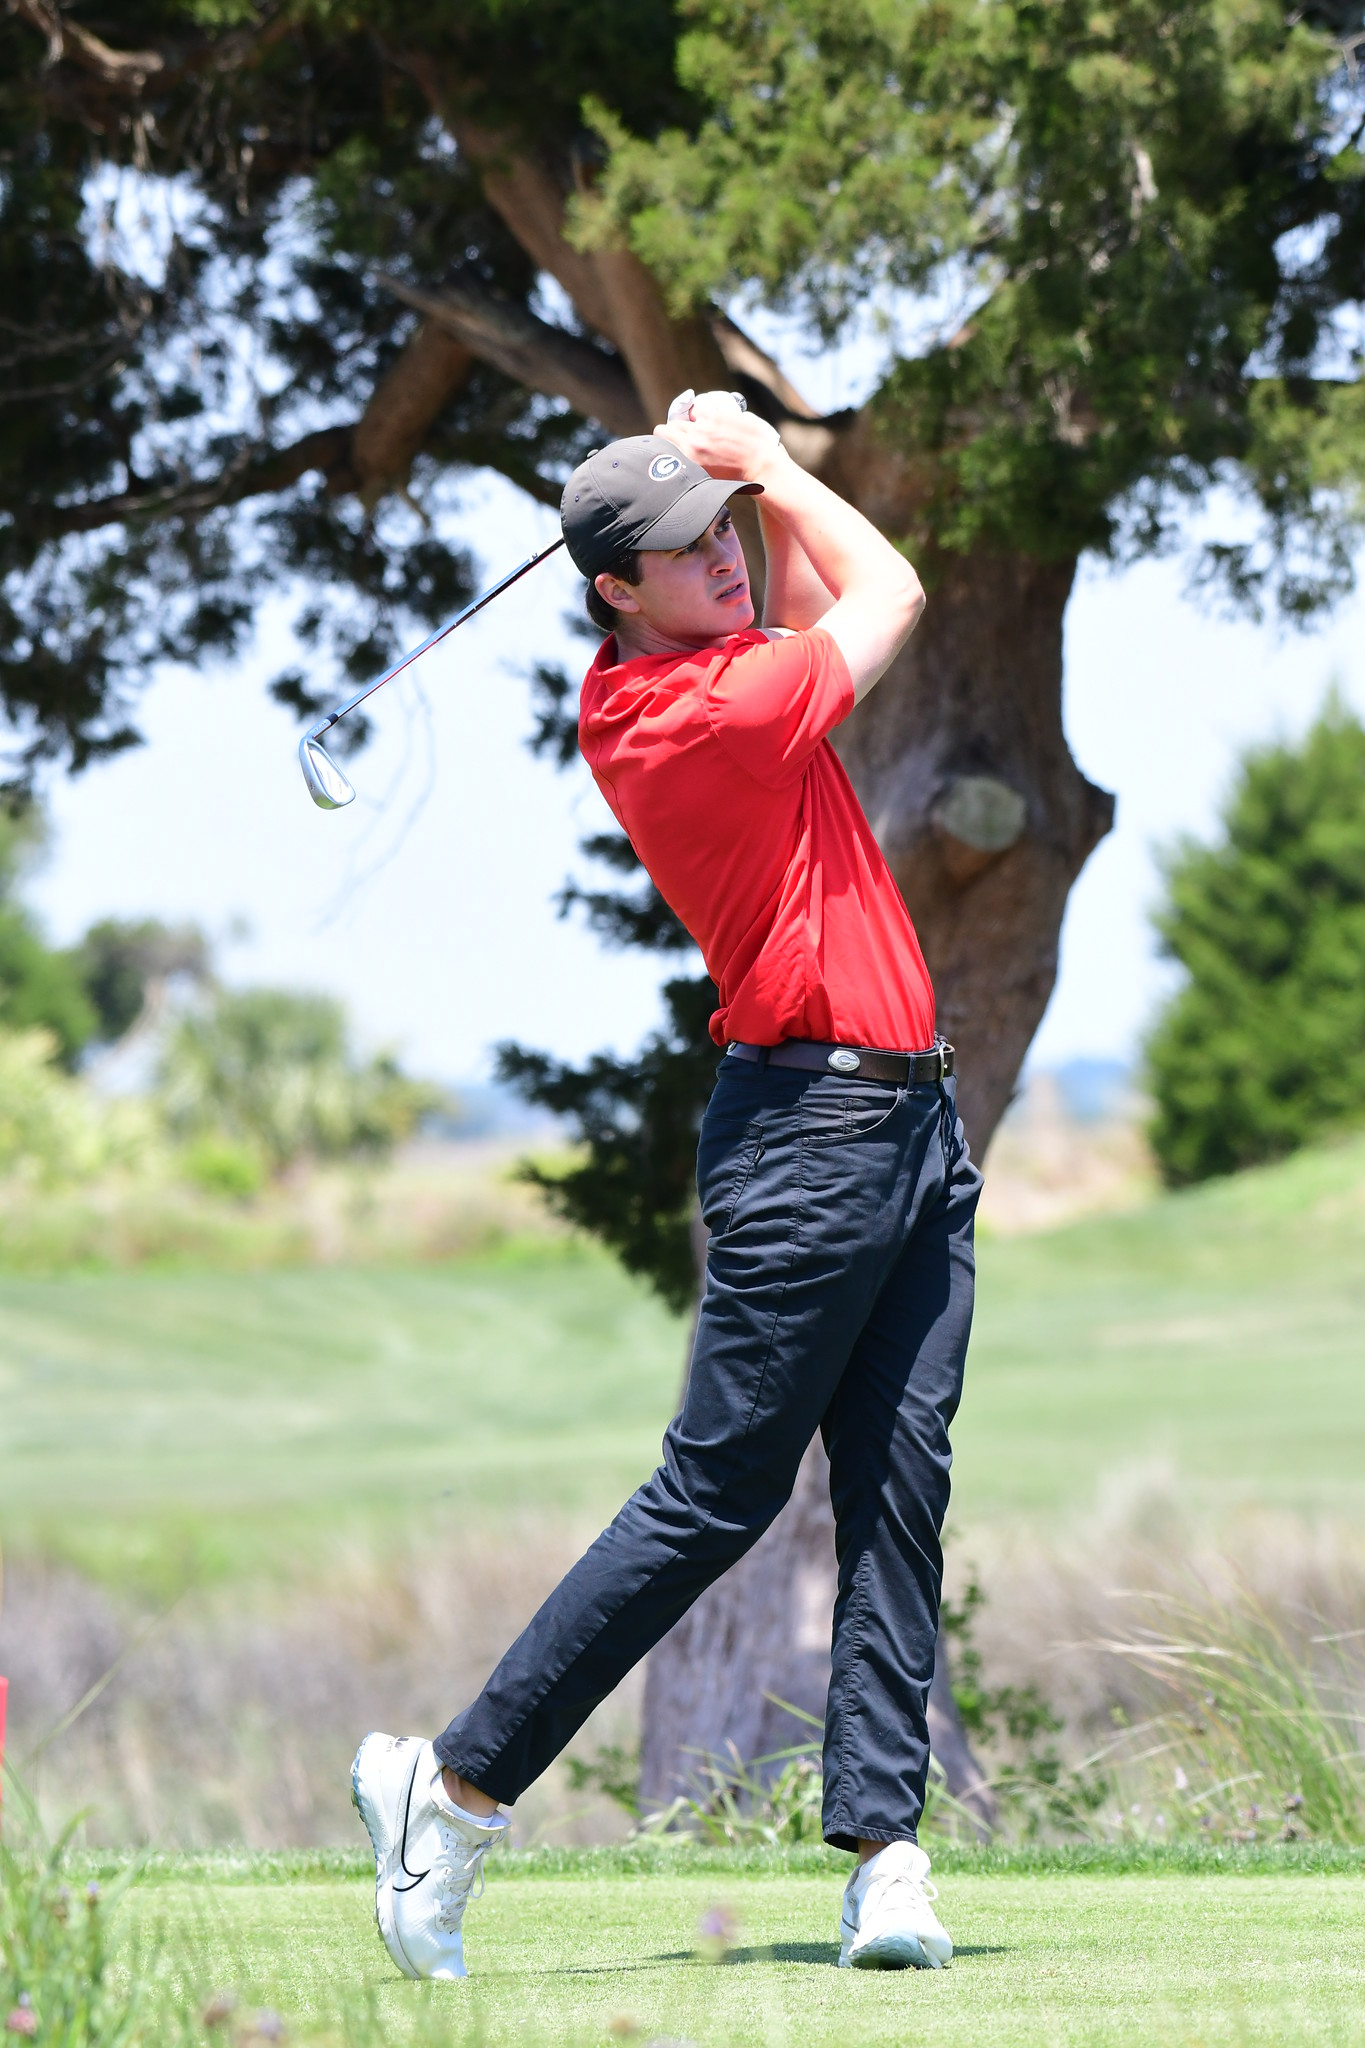 The Georgia men's golf team competed in the 2021 SEC Golf Championships, held on Sea Island's Seaside course on St. Simons Island, GA, April 21-25, 2021. Photo credit Perry McIntyre.